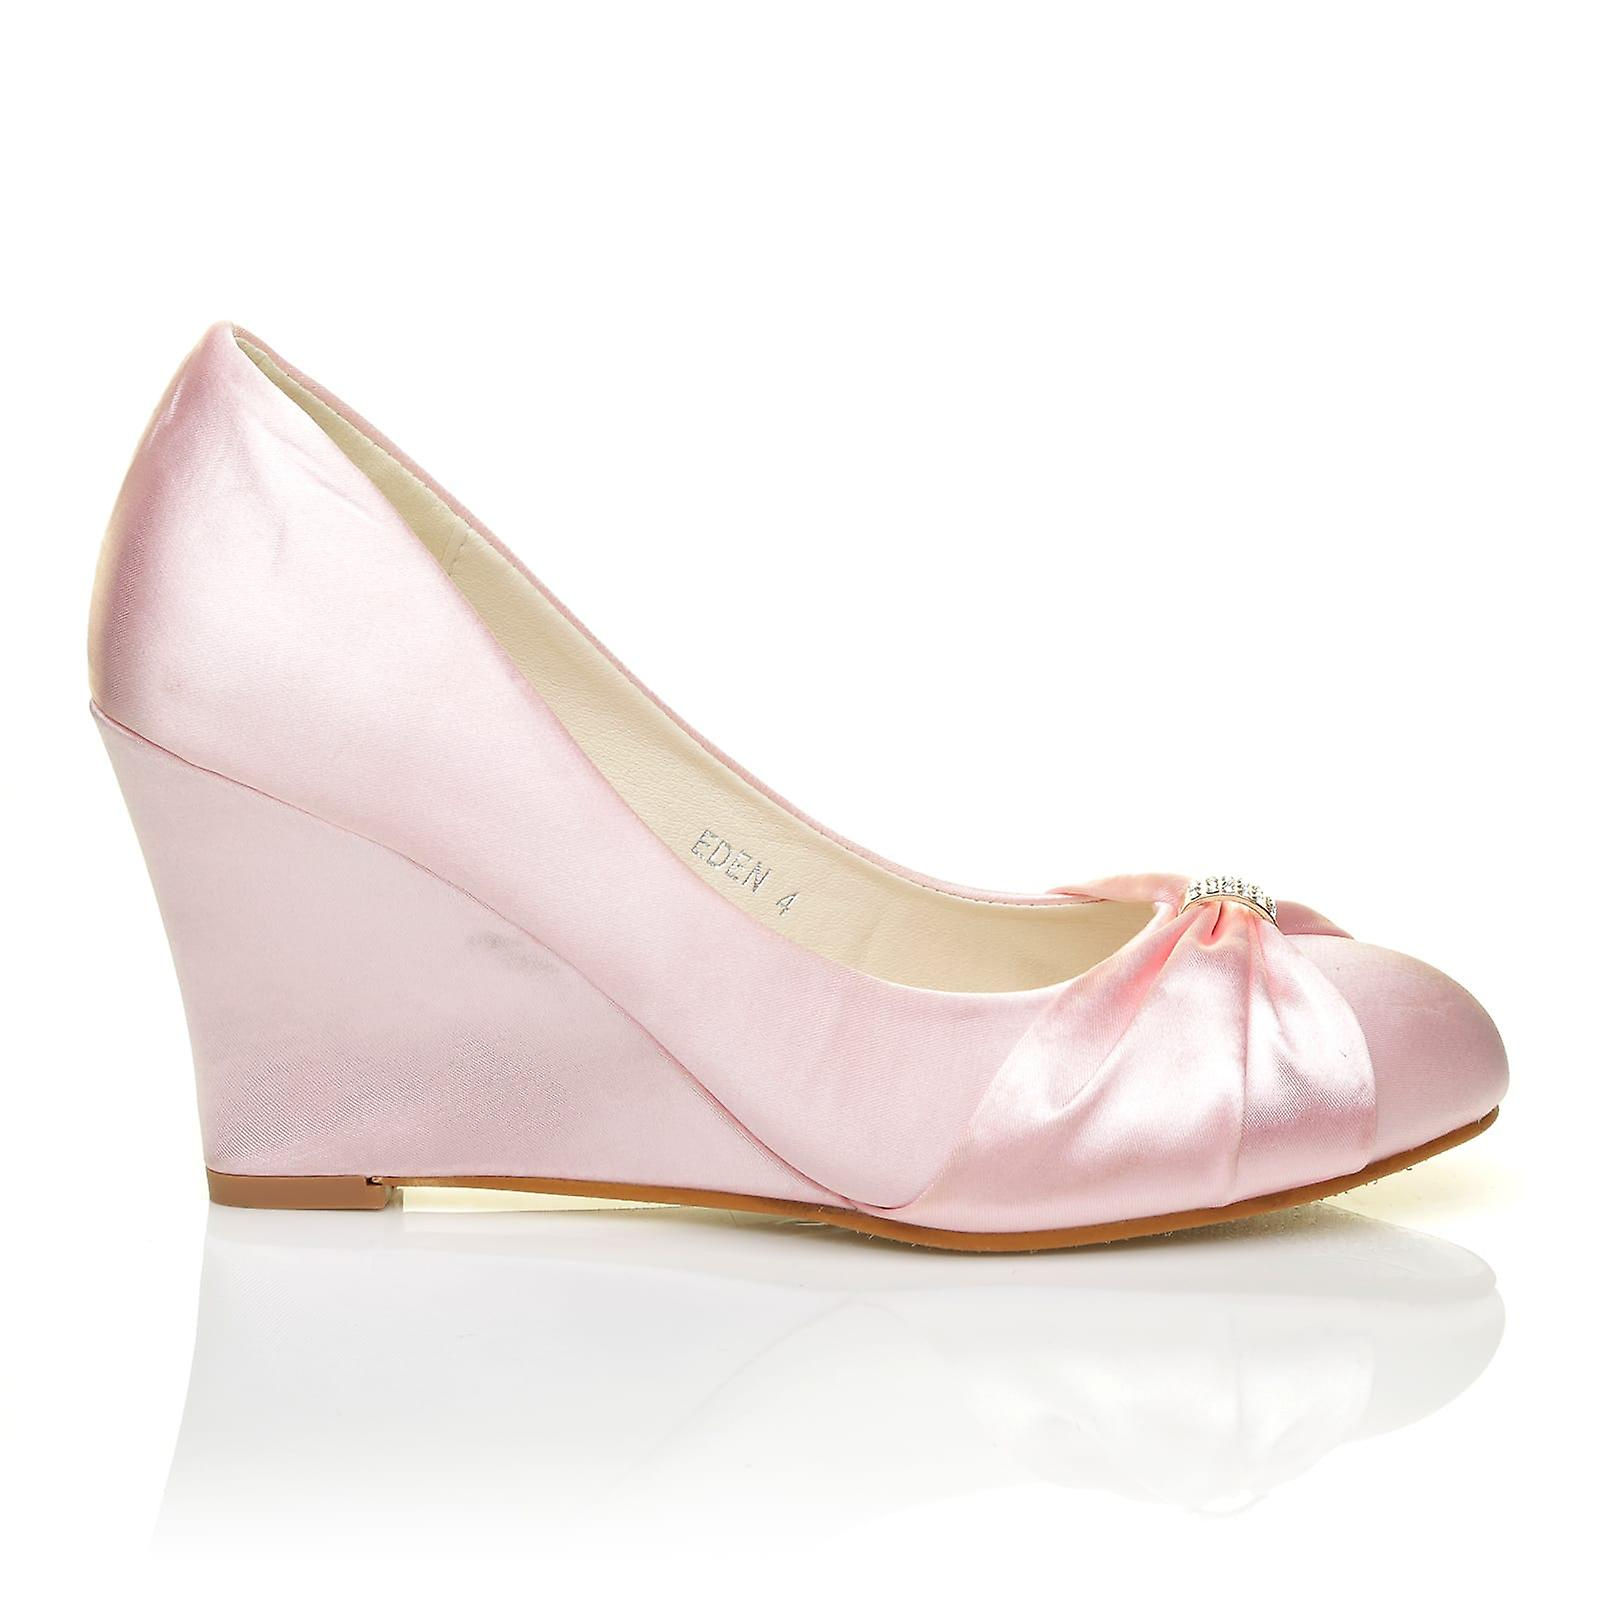 EDEN Baby Pink Bridal Satin Wedge High Heel Bridal Pink Court Shoes b046e8